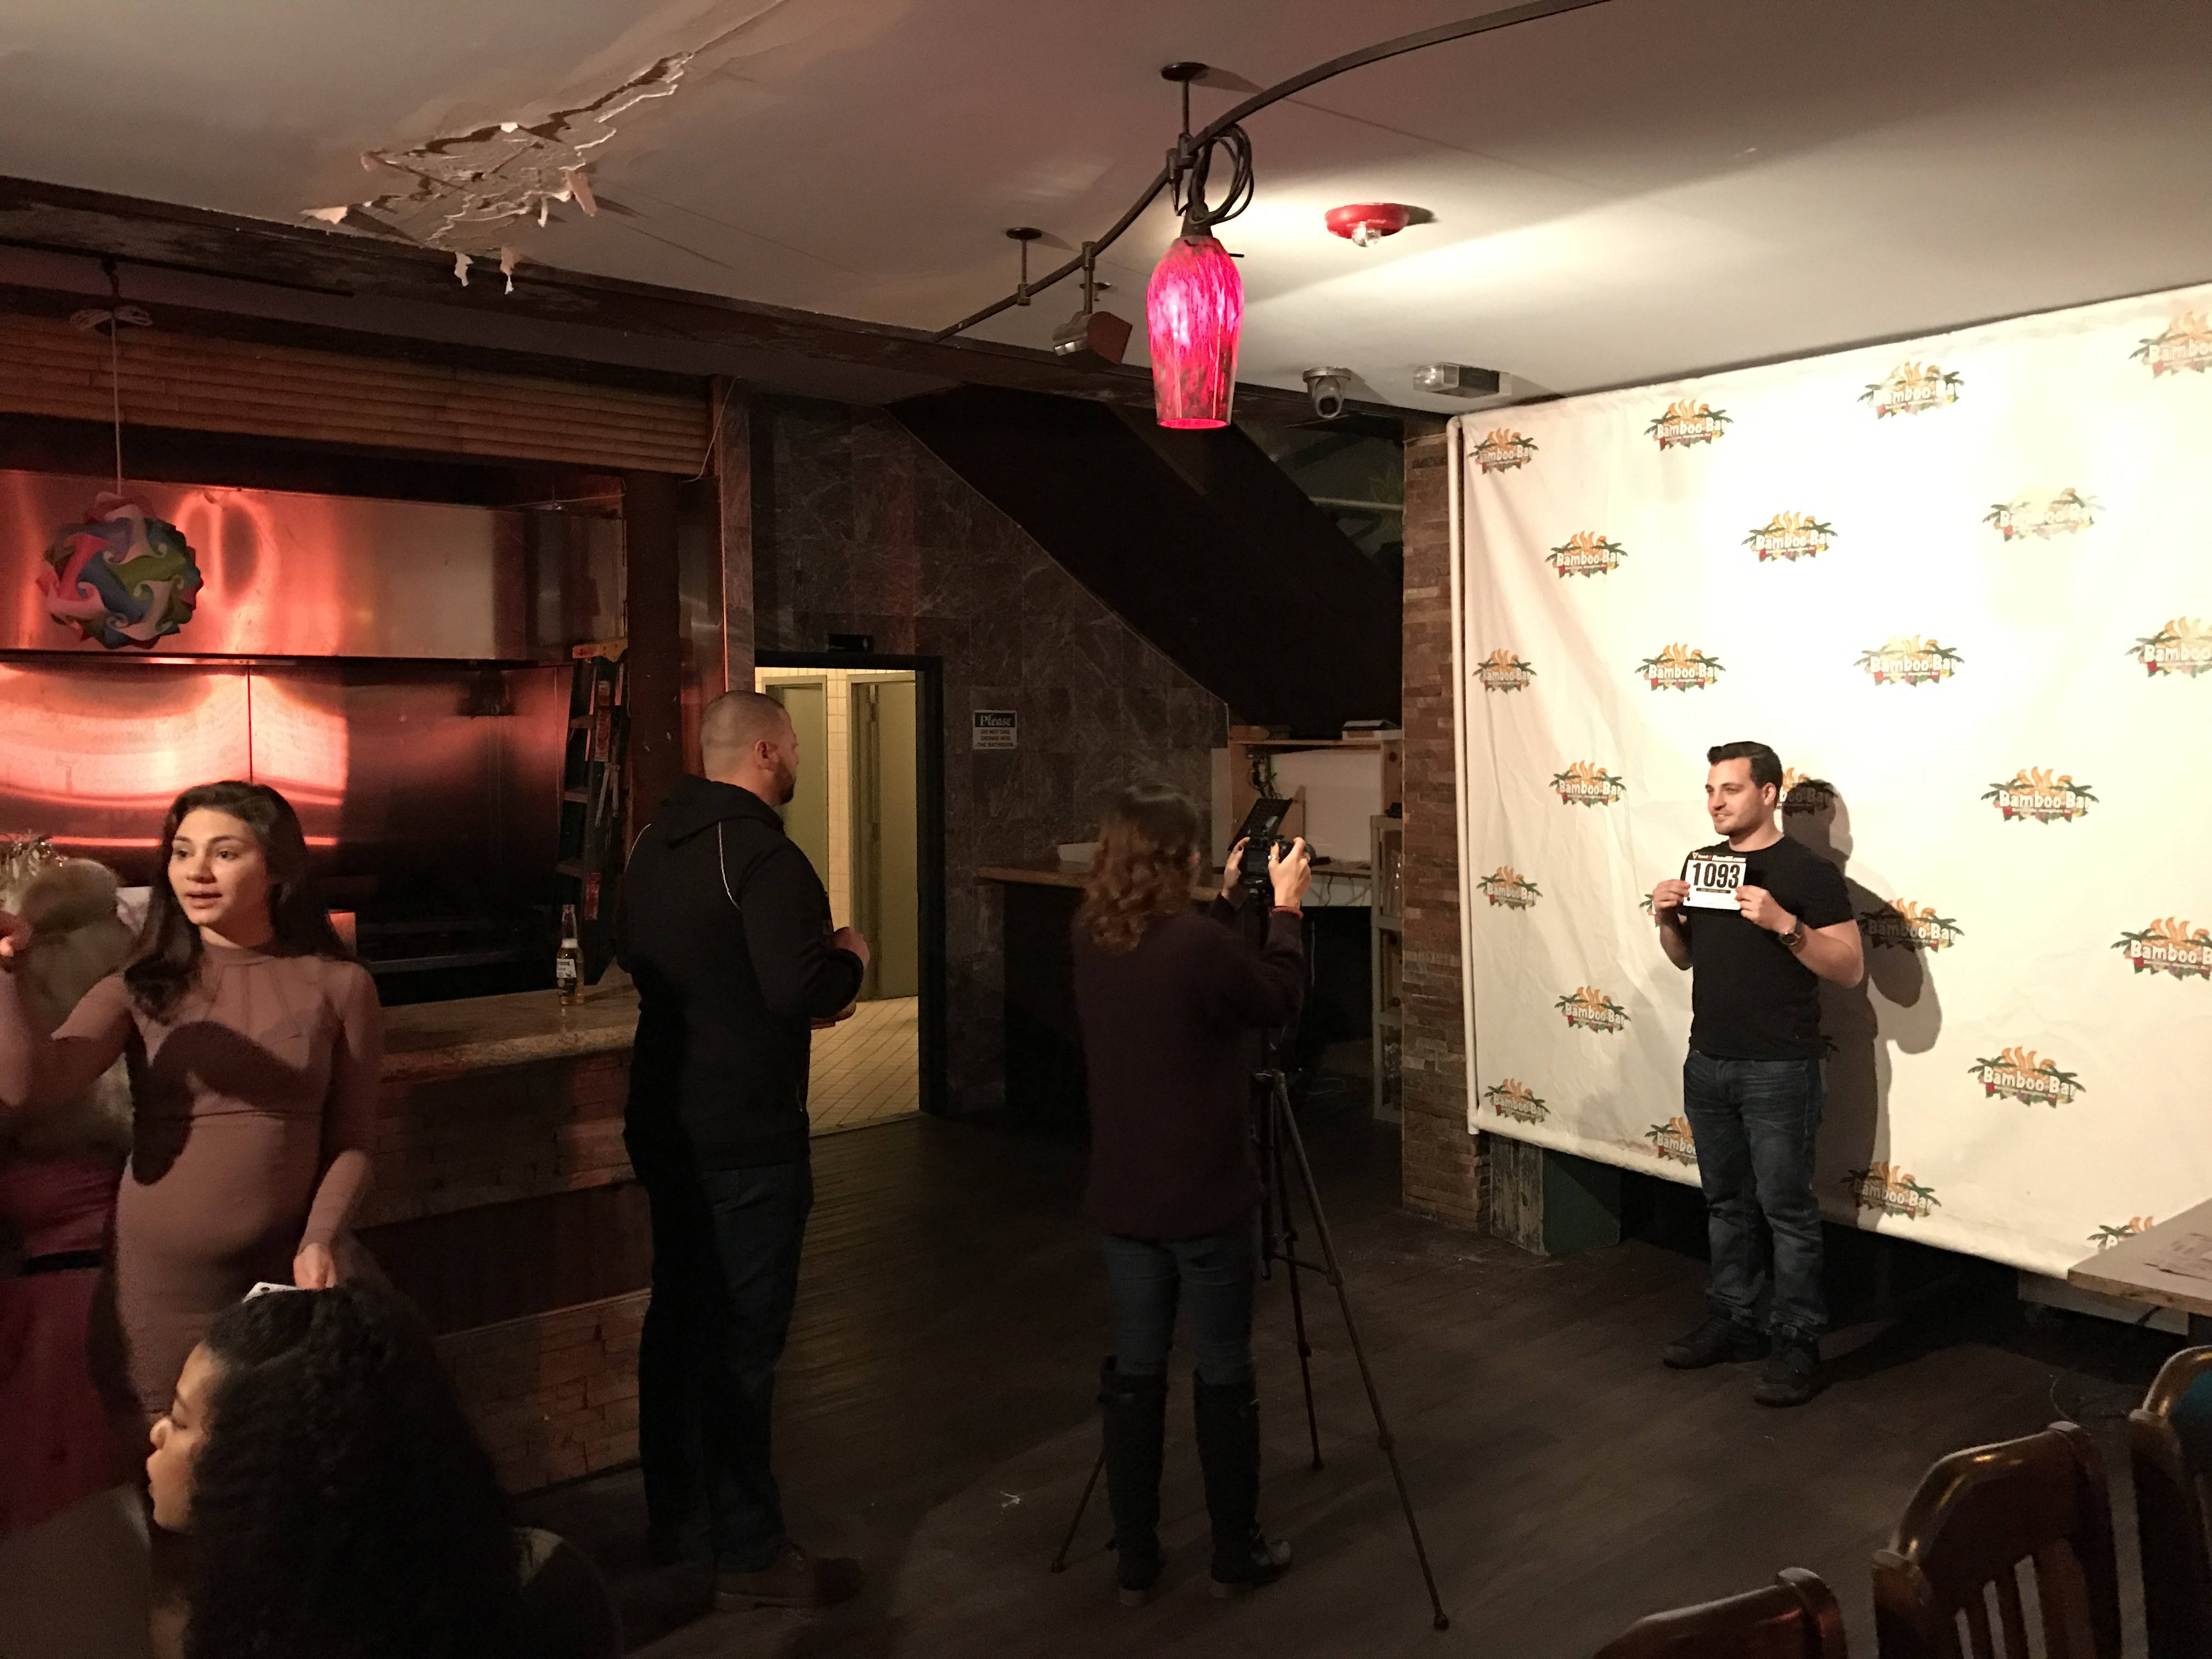 Prospective cast members of a new Seaside Heights reality TV show at the Bamboo Bar, Feb. 19, 2017. (Photo: Daniel Nee)